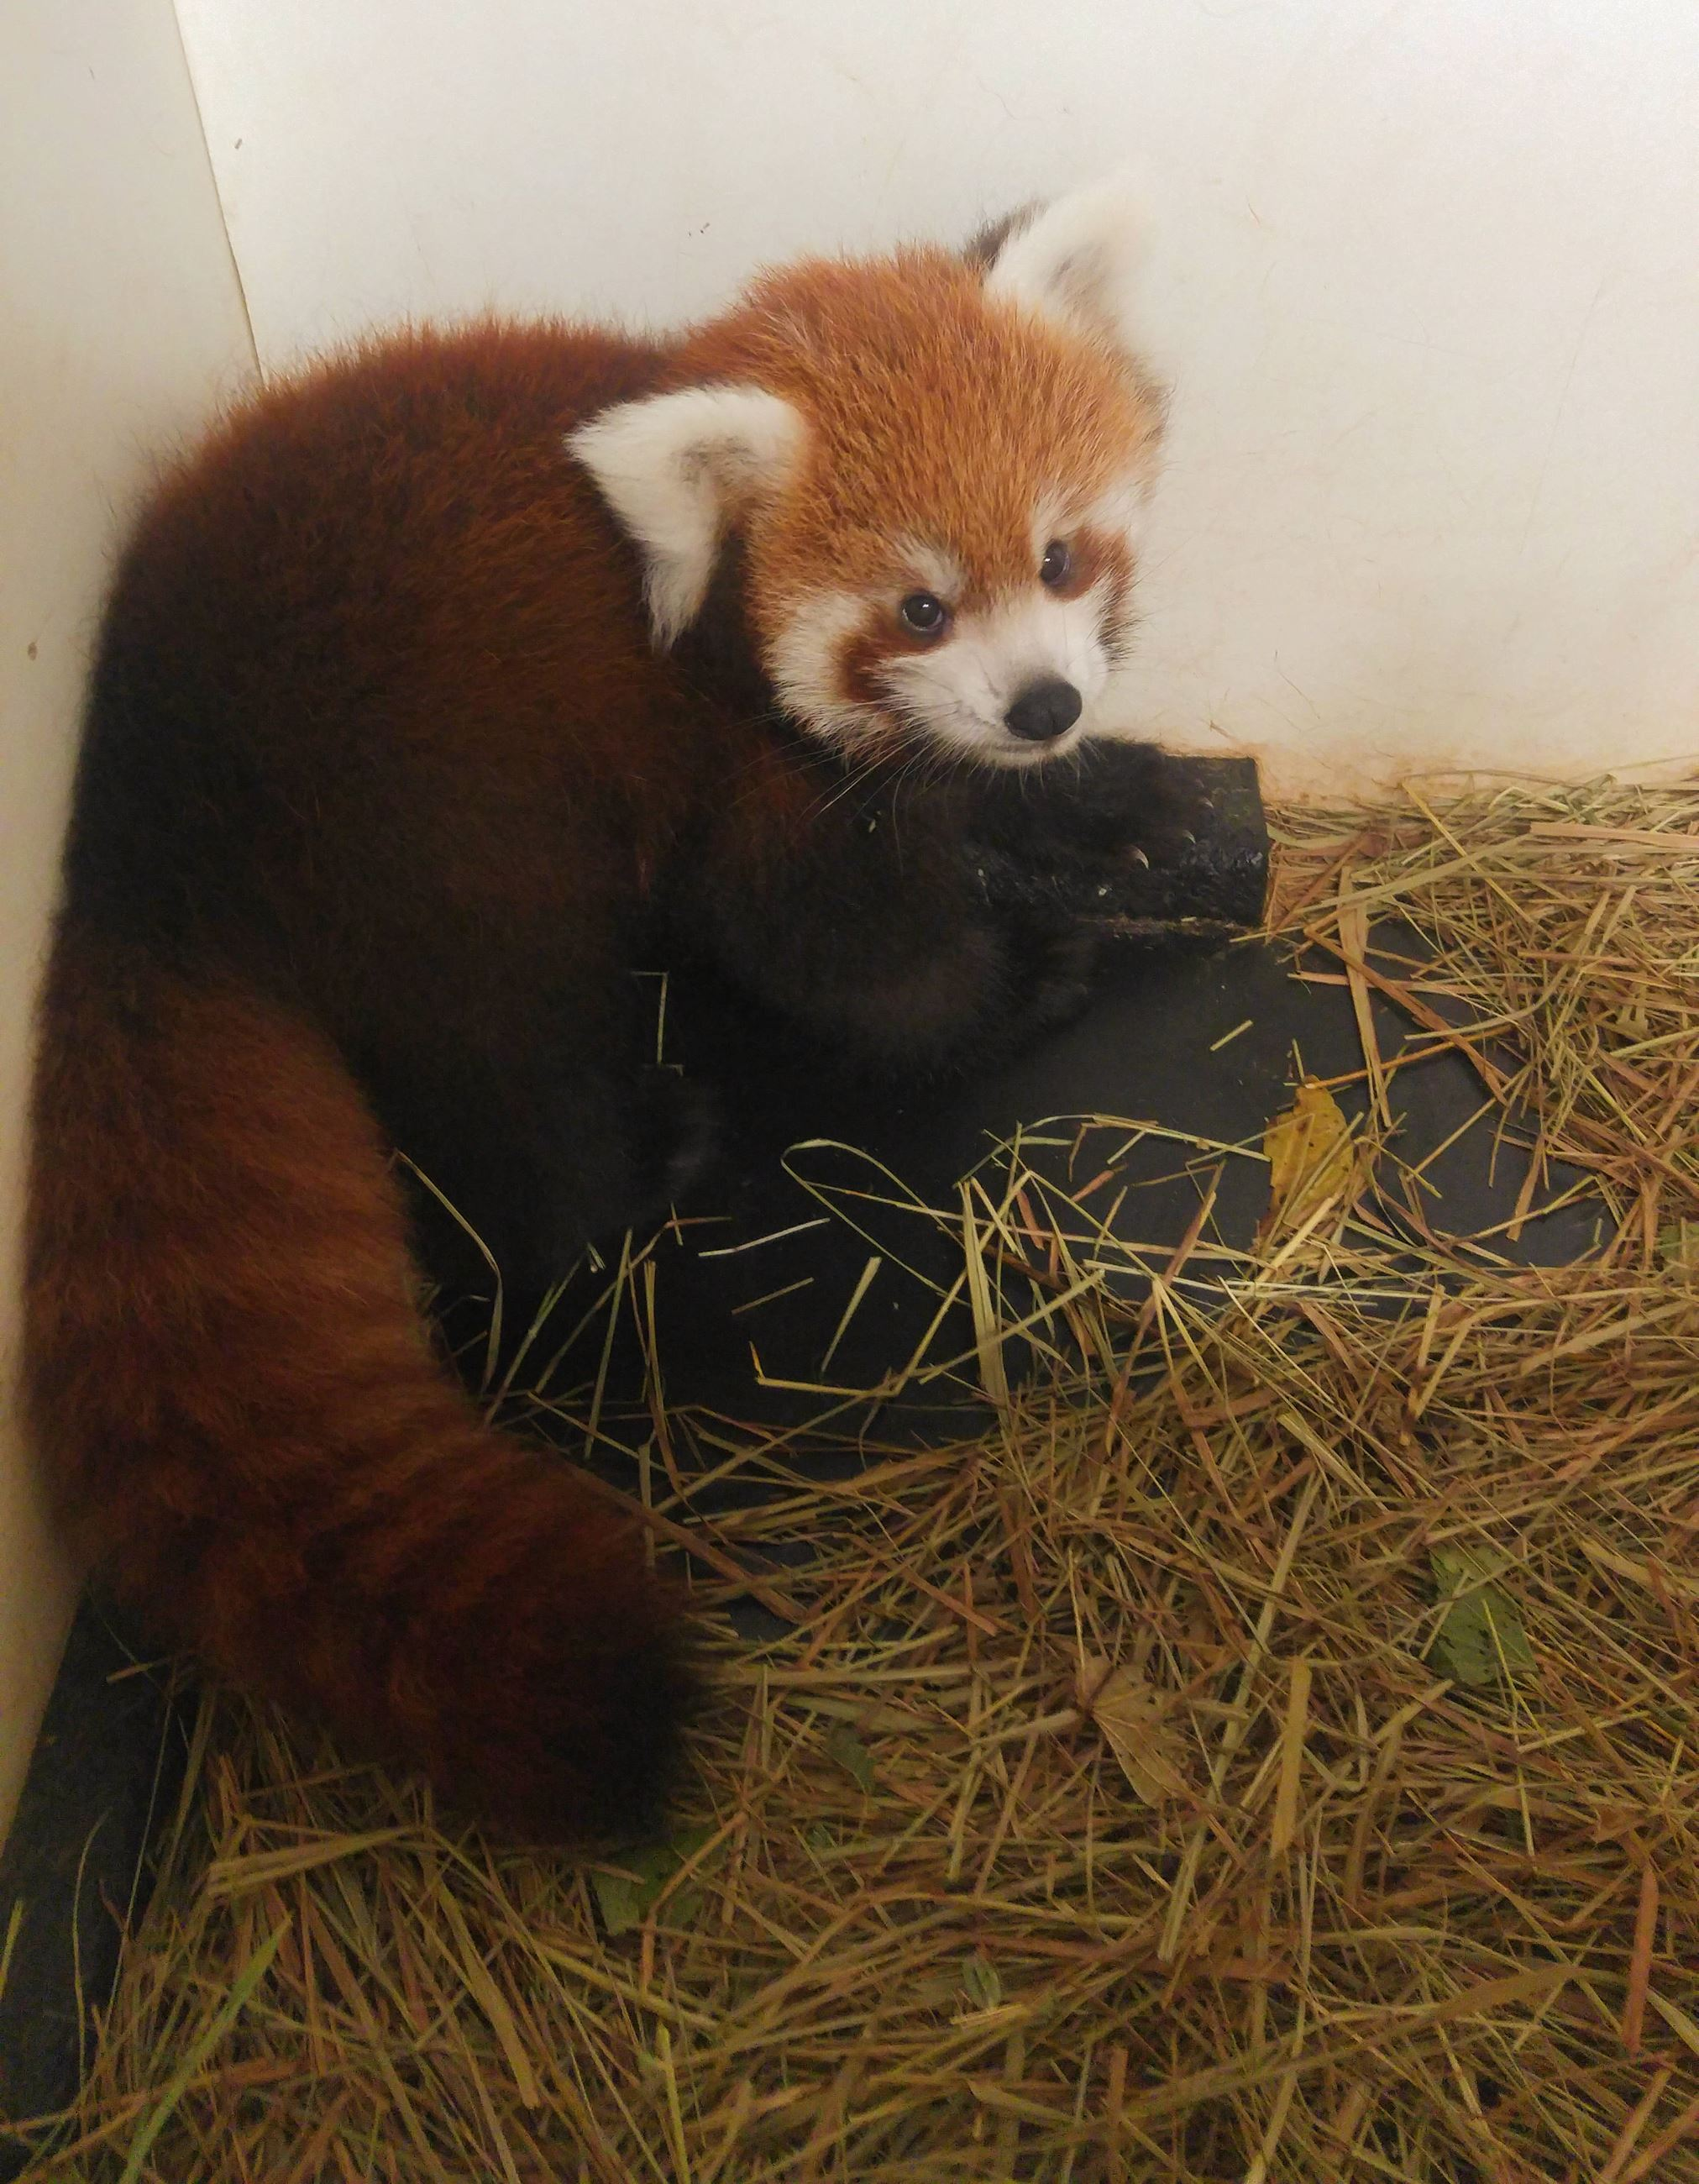 Sunset Zoo Red Panda Cub